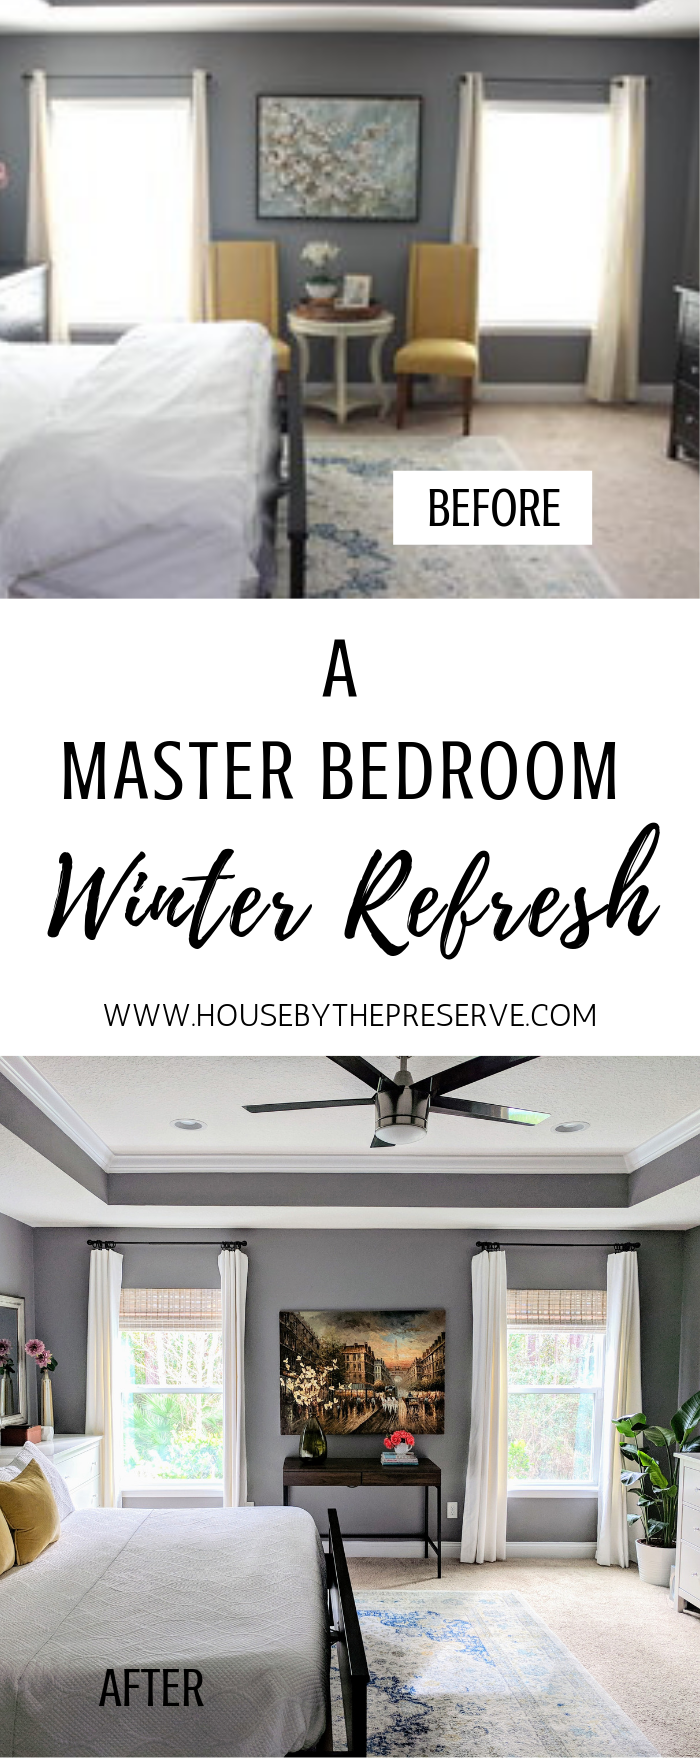 A Master Bedroom Winter Refresh - House by the Preserve.png